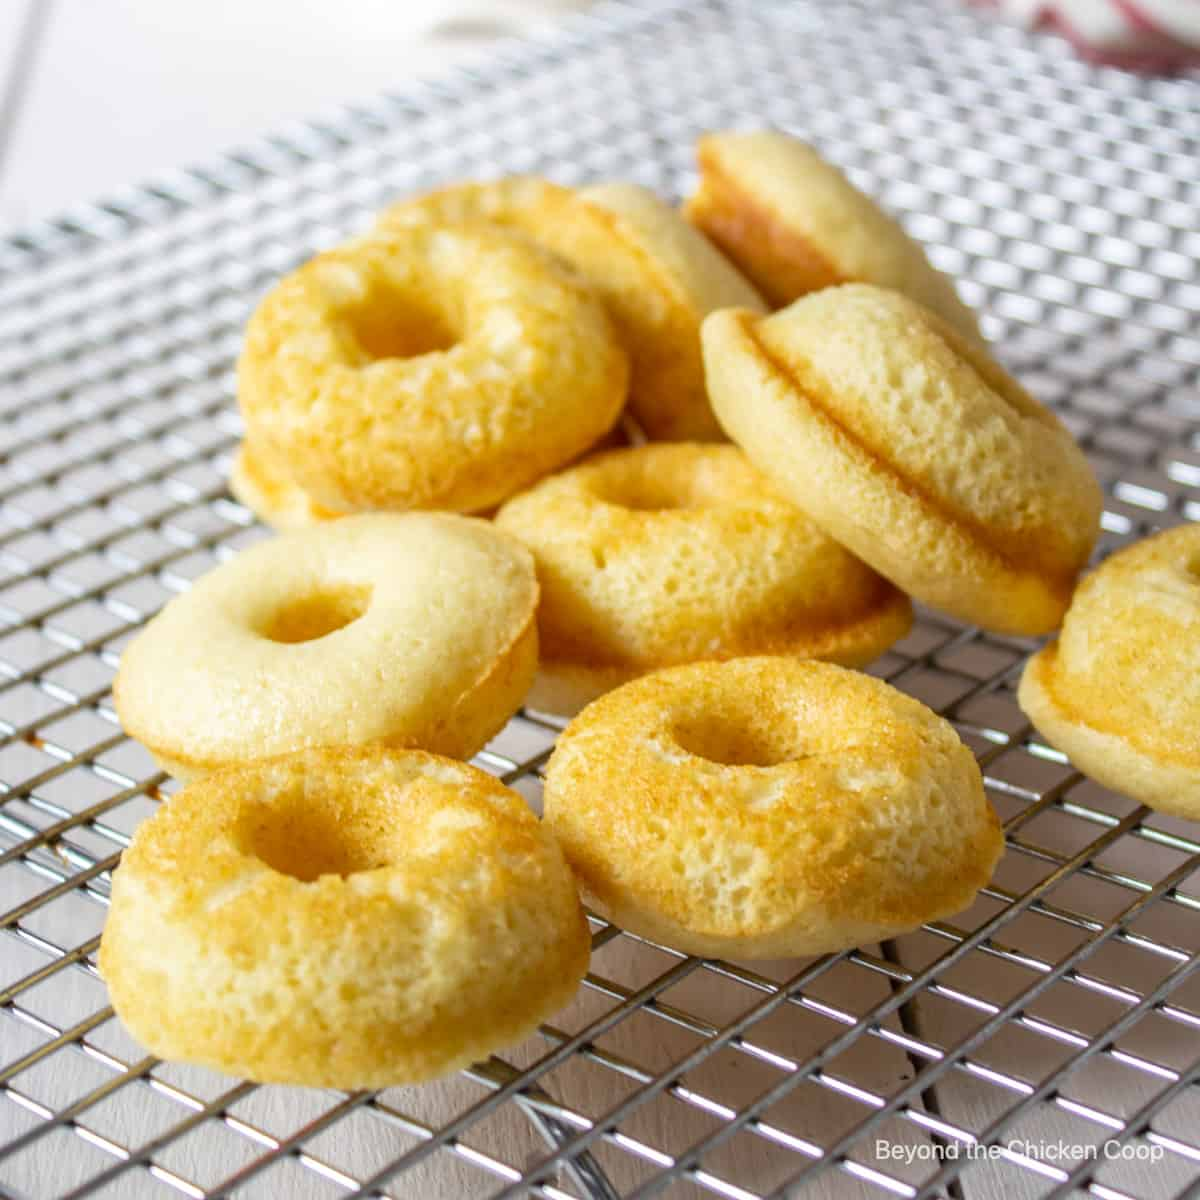 Mini donuts on a cooling rack.